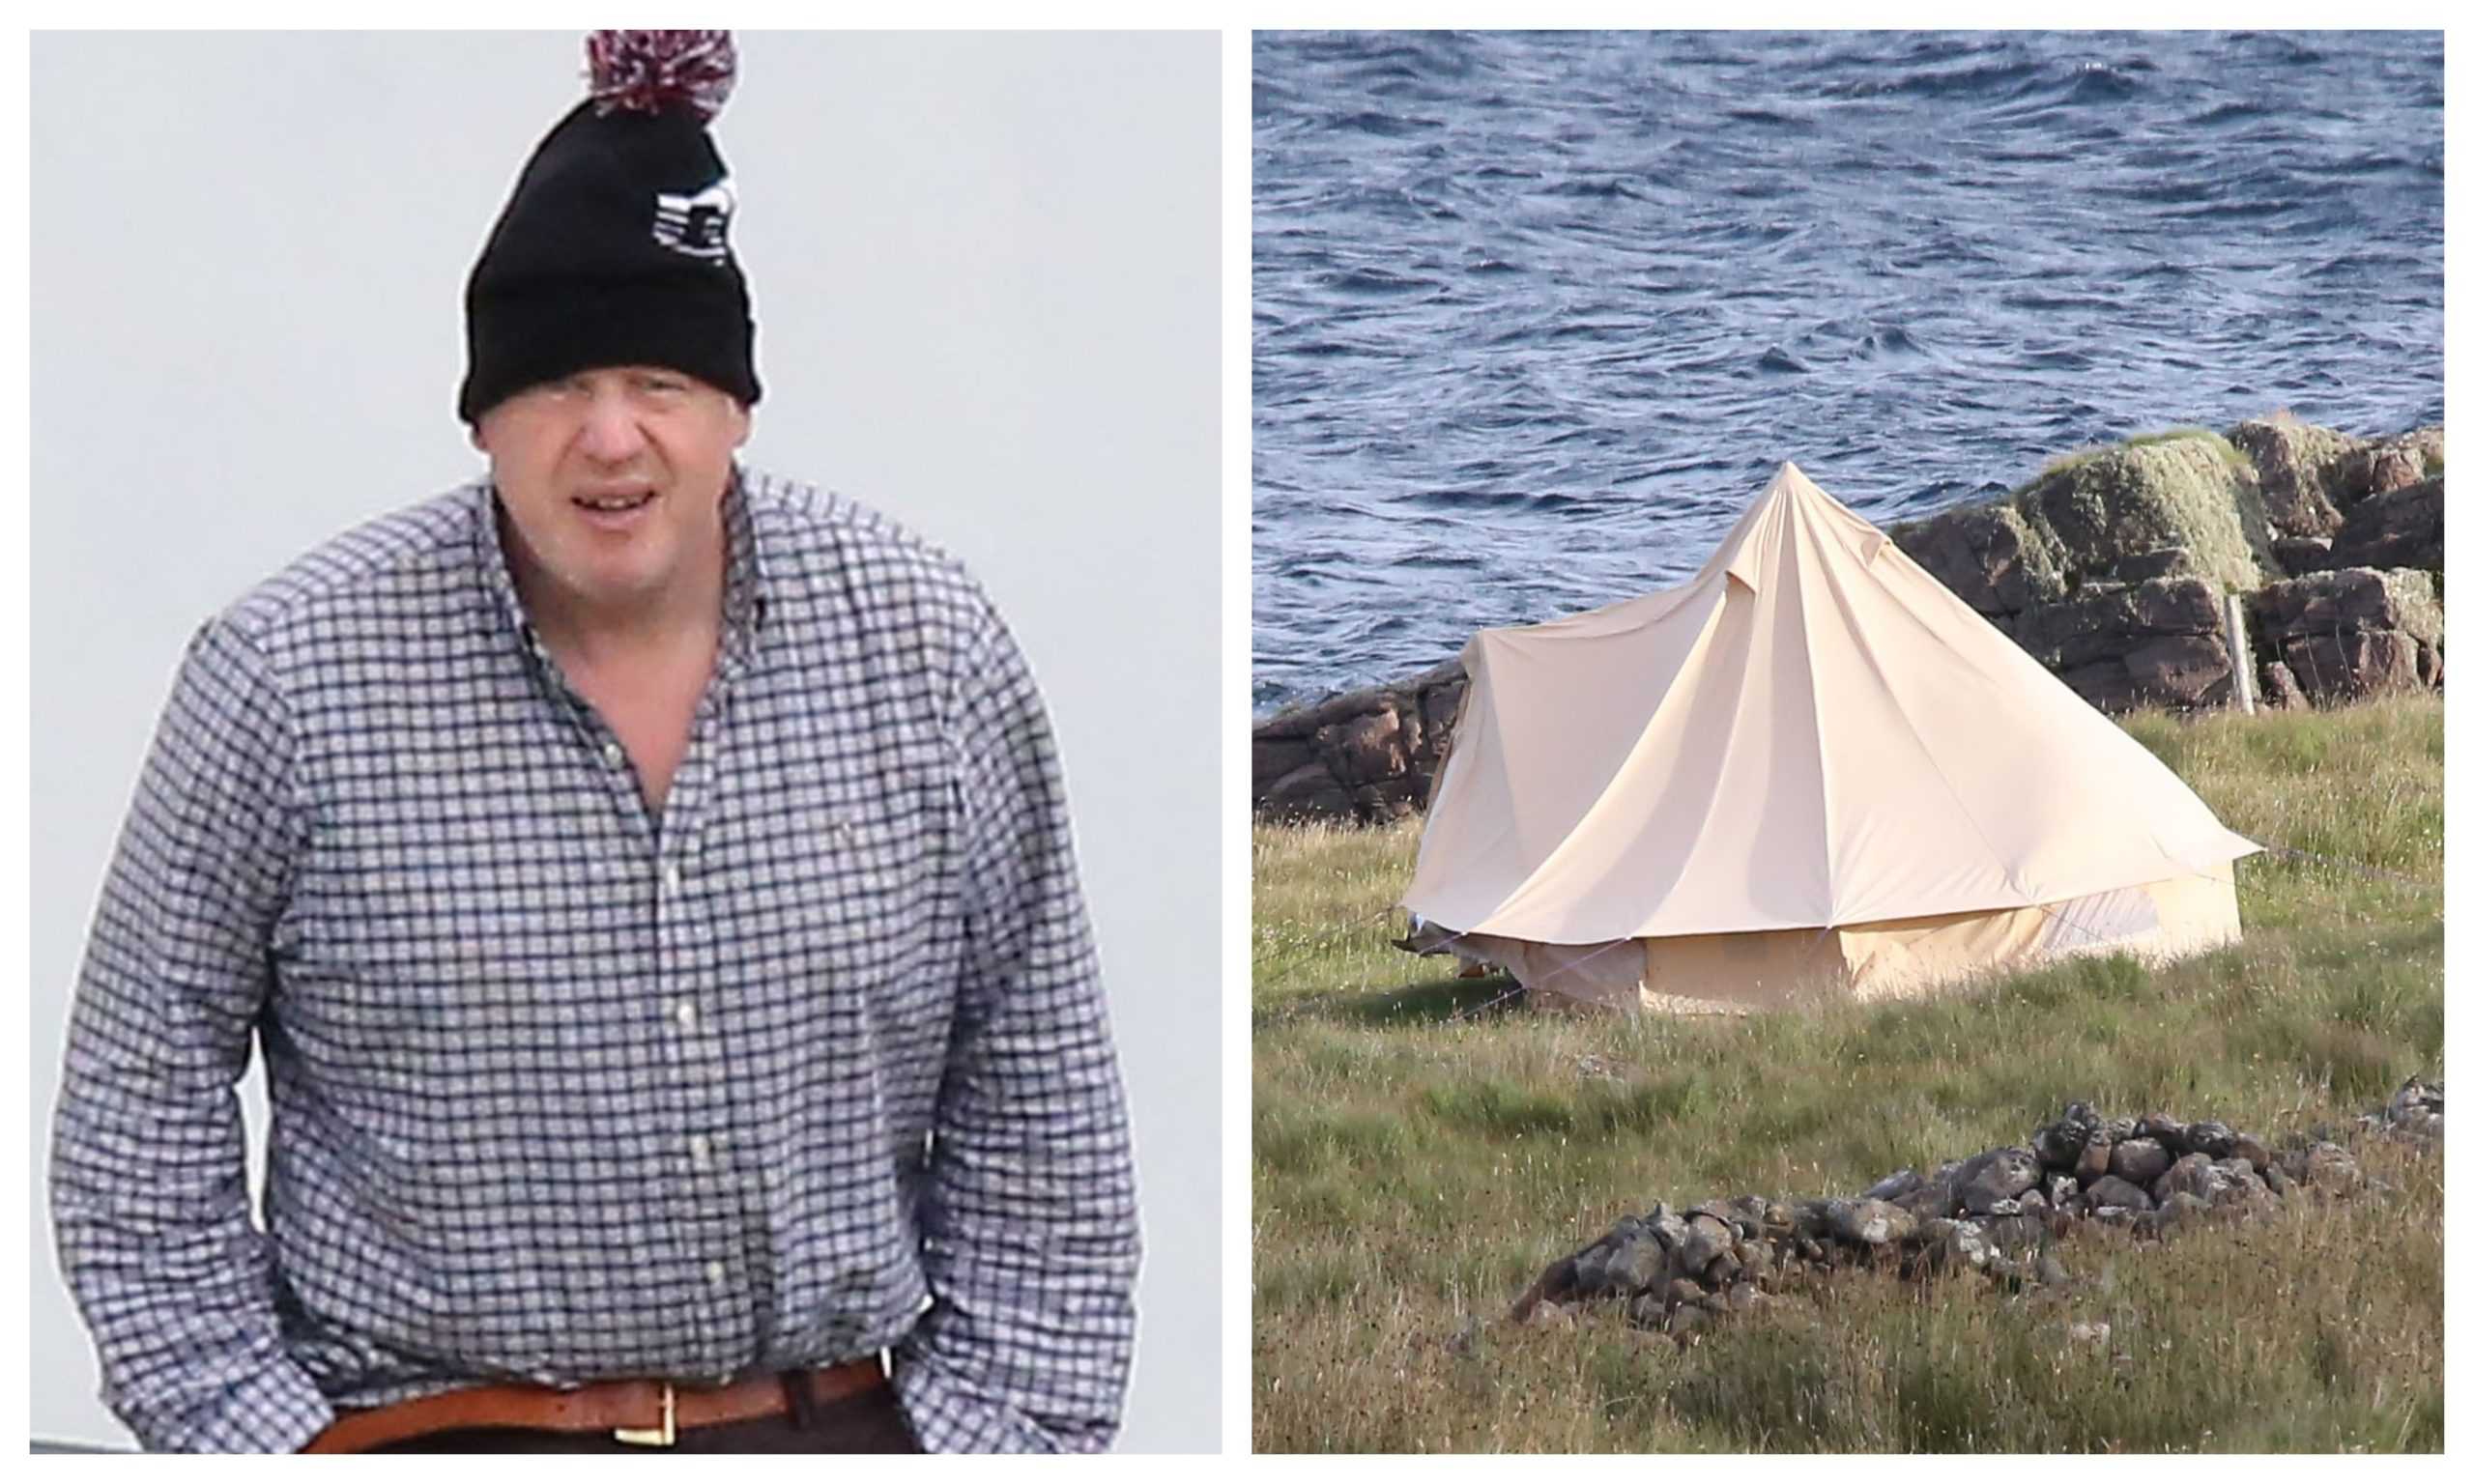 Boris Johnson has been spotted on holiday in the north of Scotland.